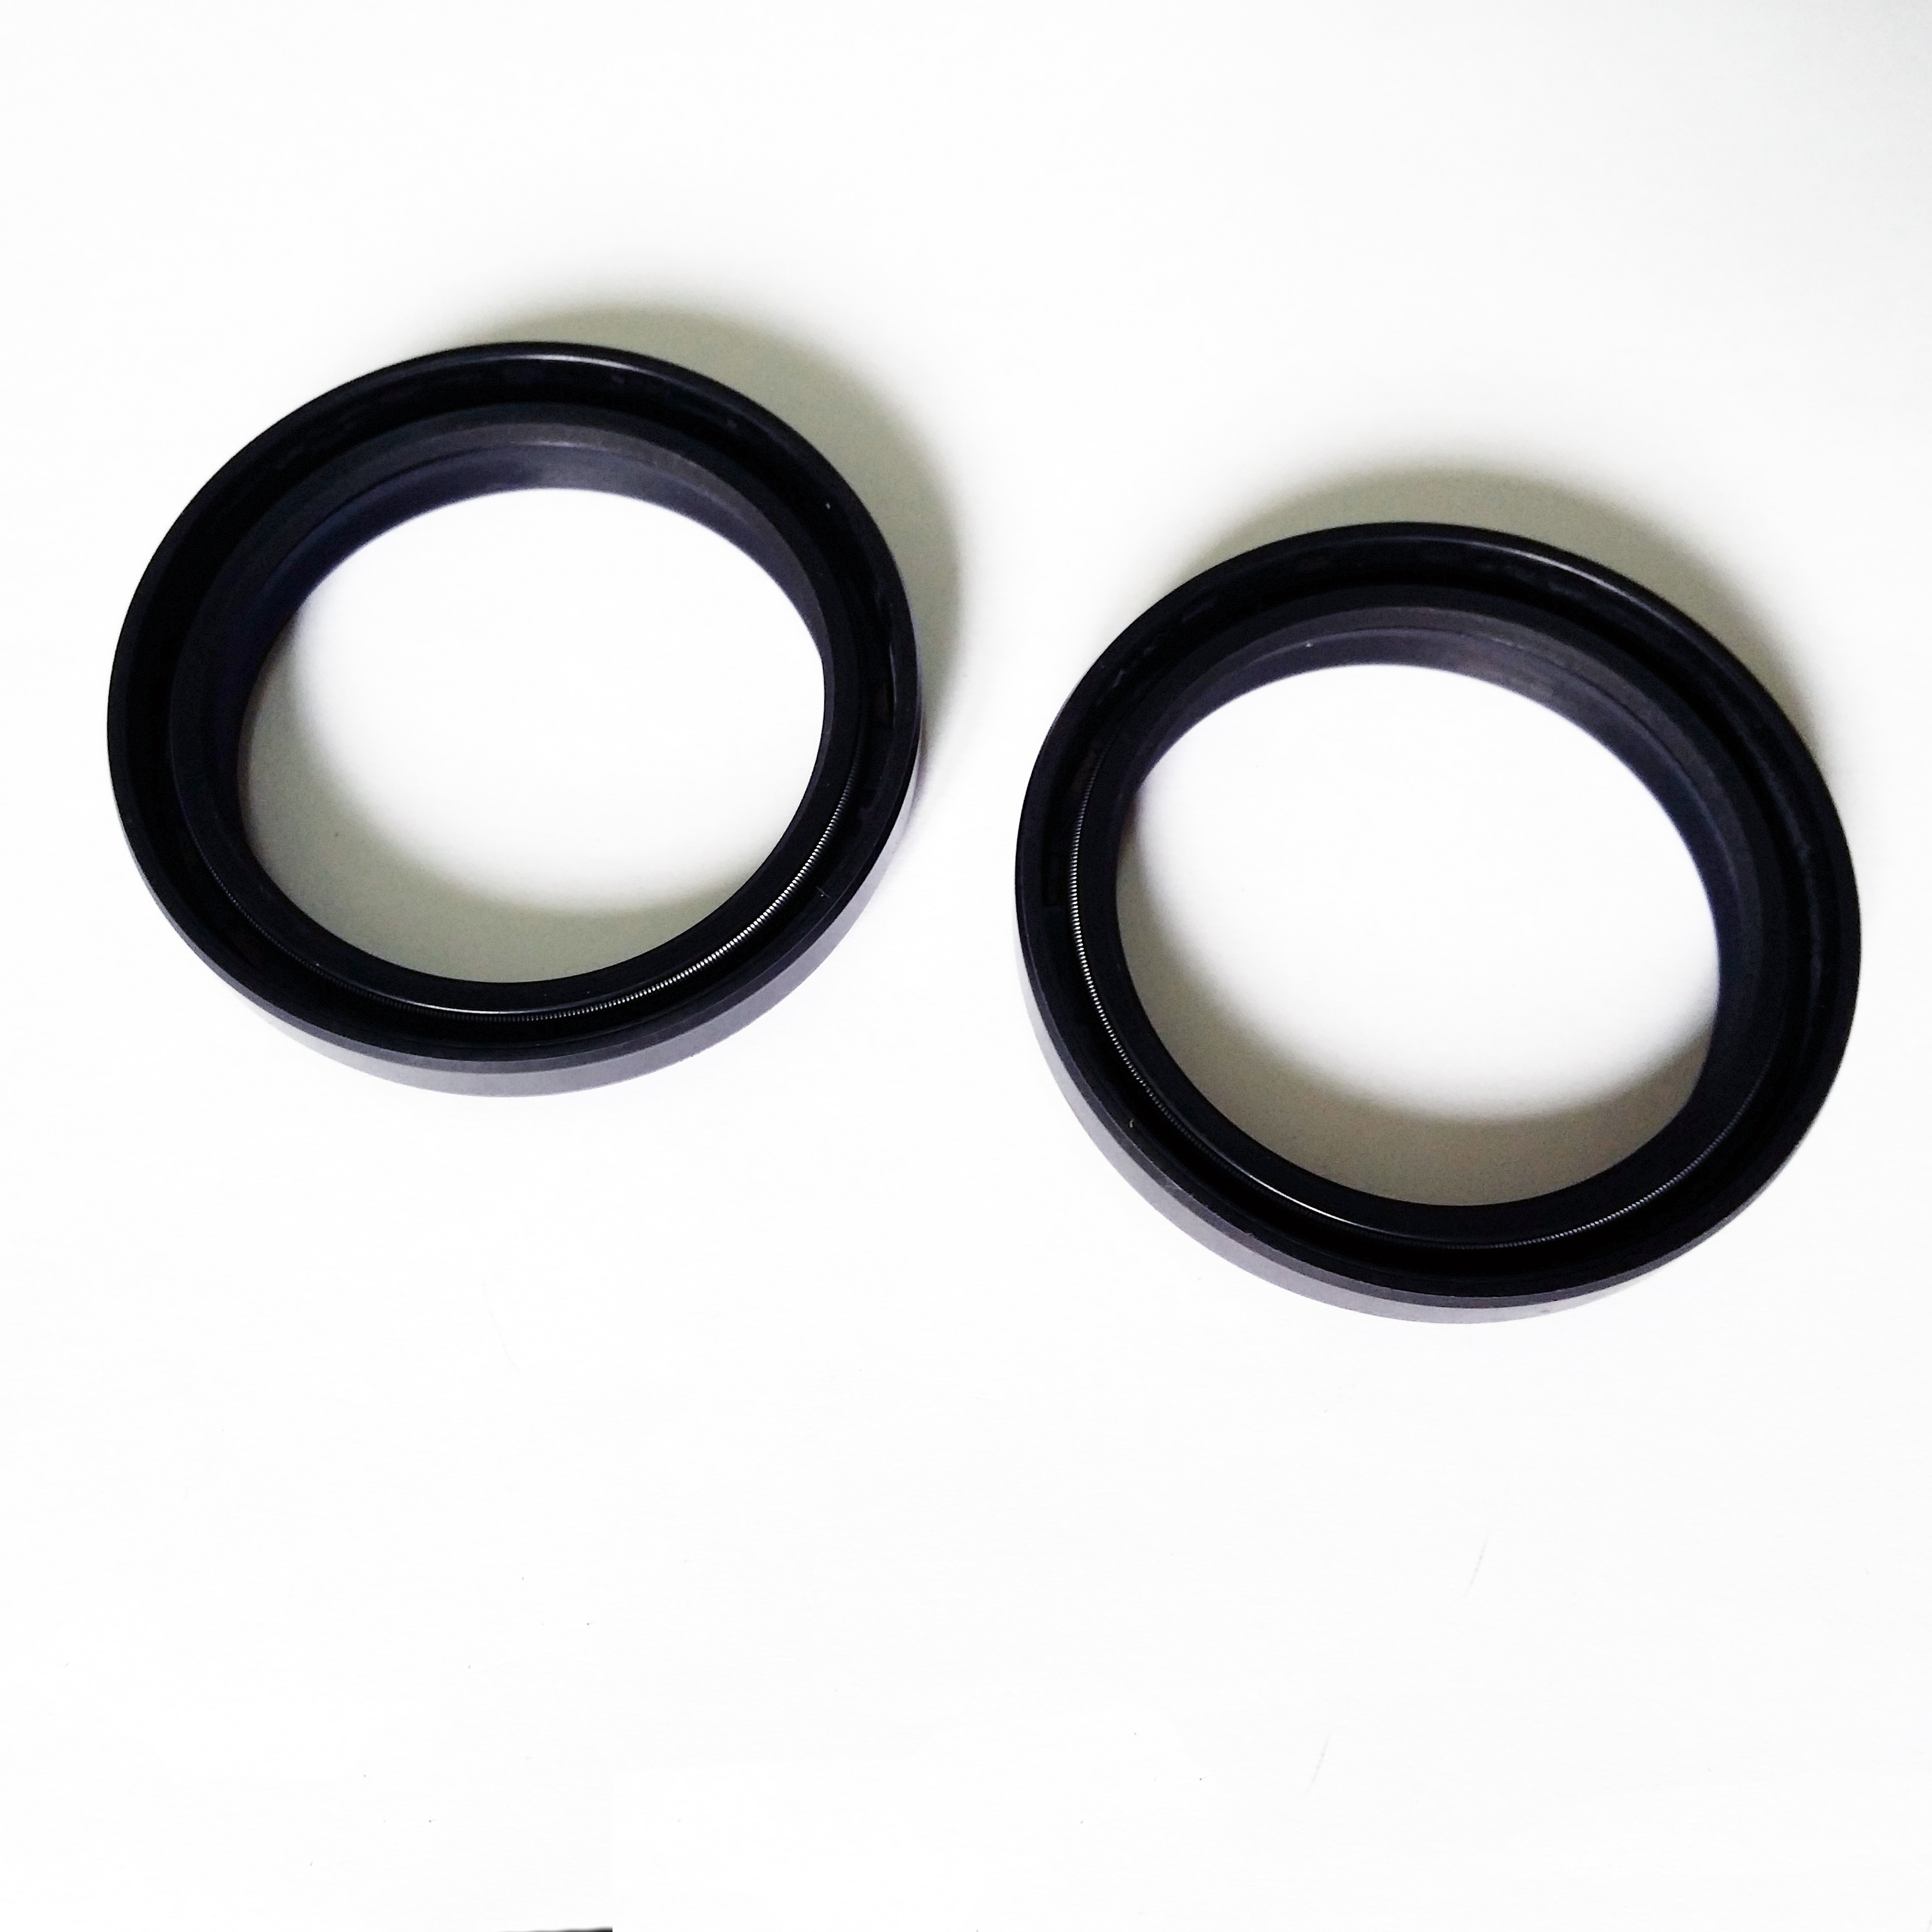 K-Tech Triumph Tiger 800 2011-2014 NOK Front Fork Oil Seals